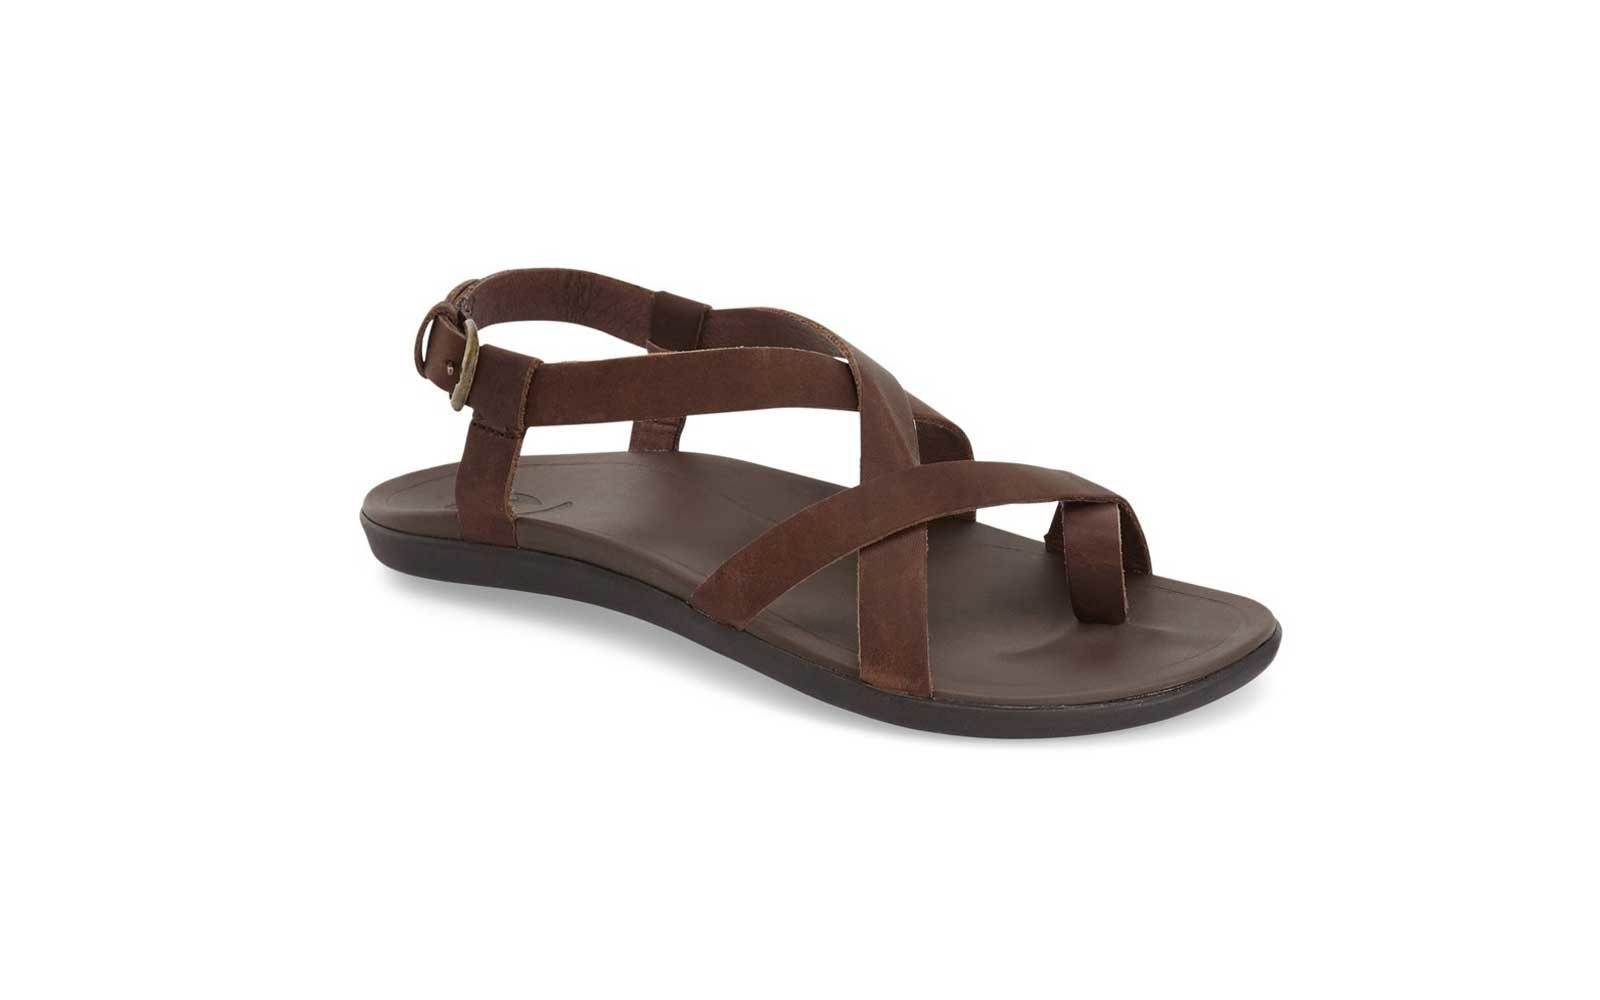 952cba0f6a8a Lightweight Leather  Olukai  Upena  Flat Sandal. womens olukai sandals